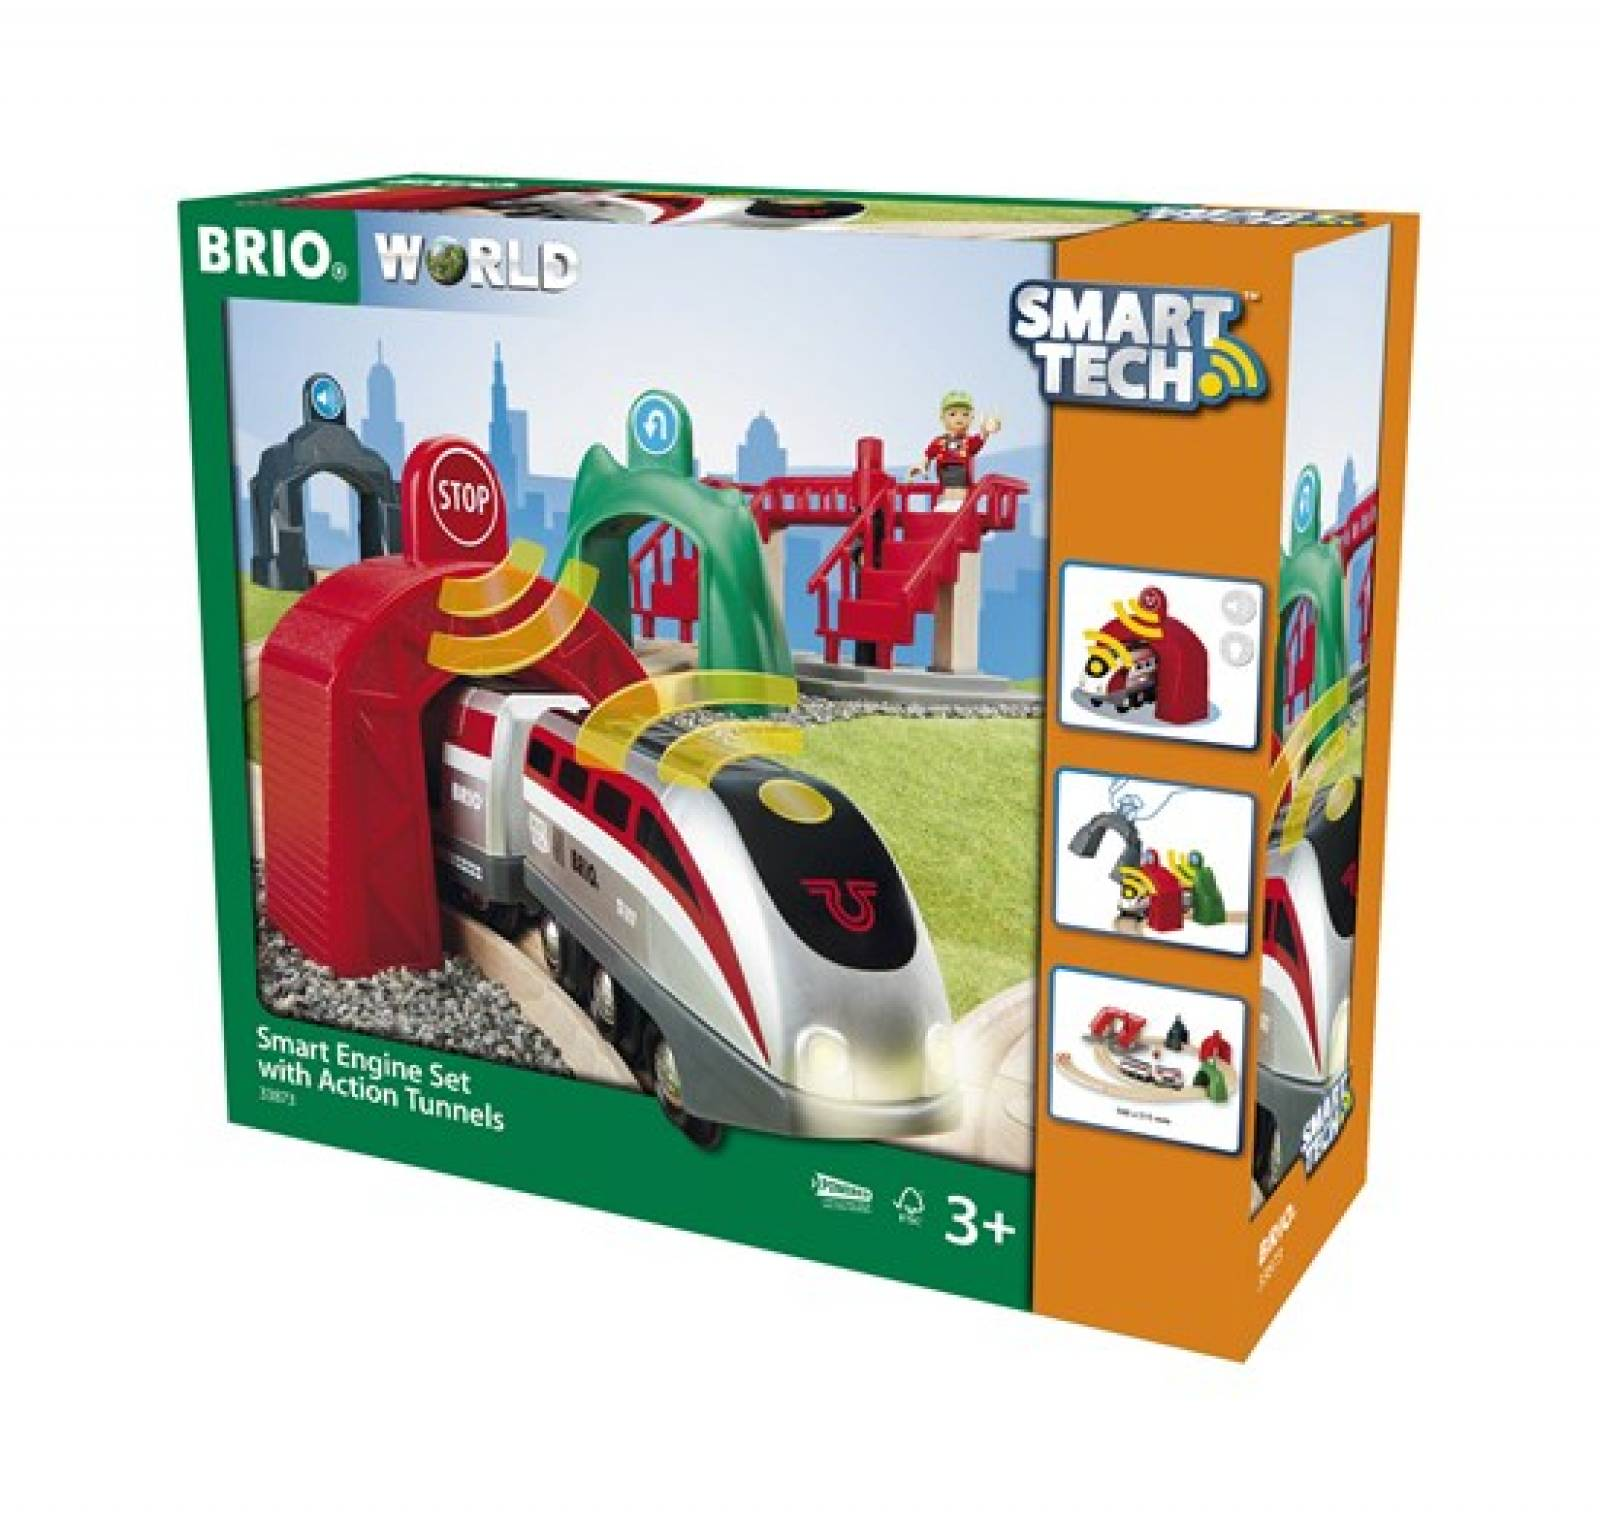 Smart Tech Engine Set + Action Tunnels BRIO Wooden Railway 3+